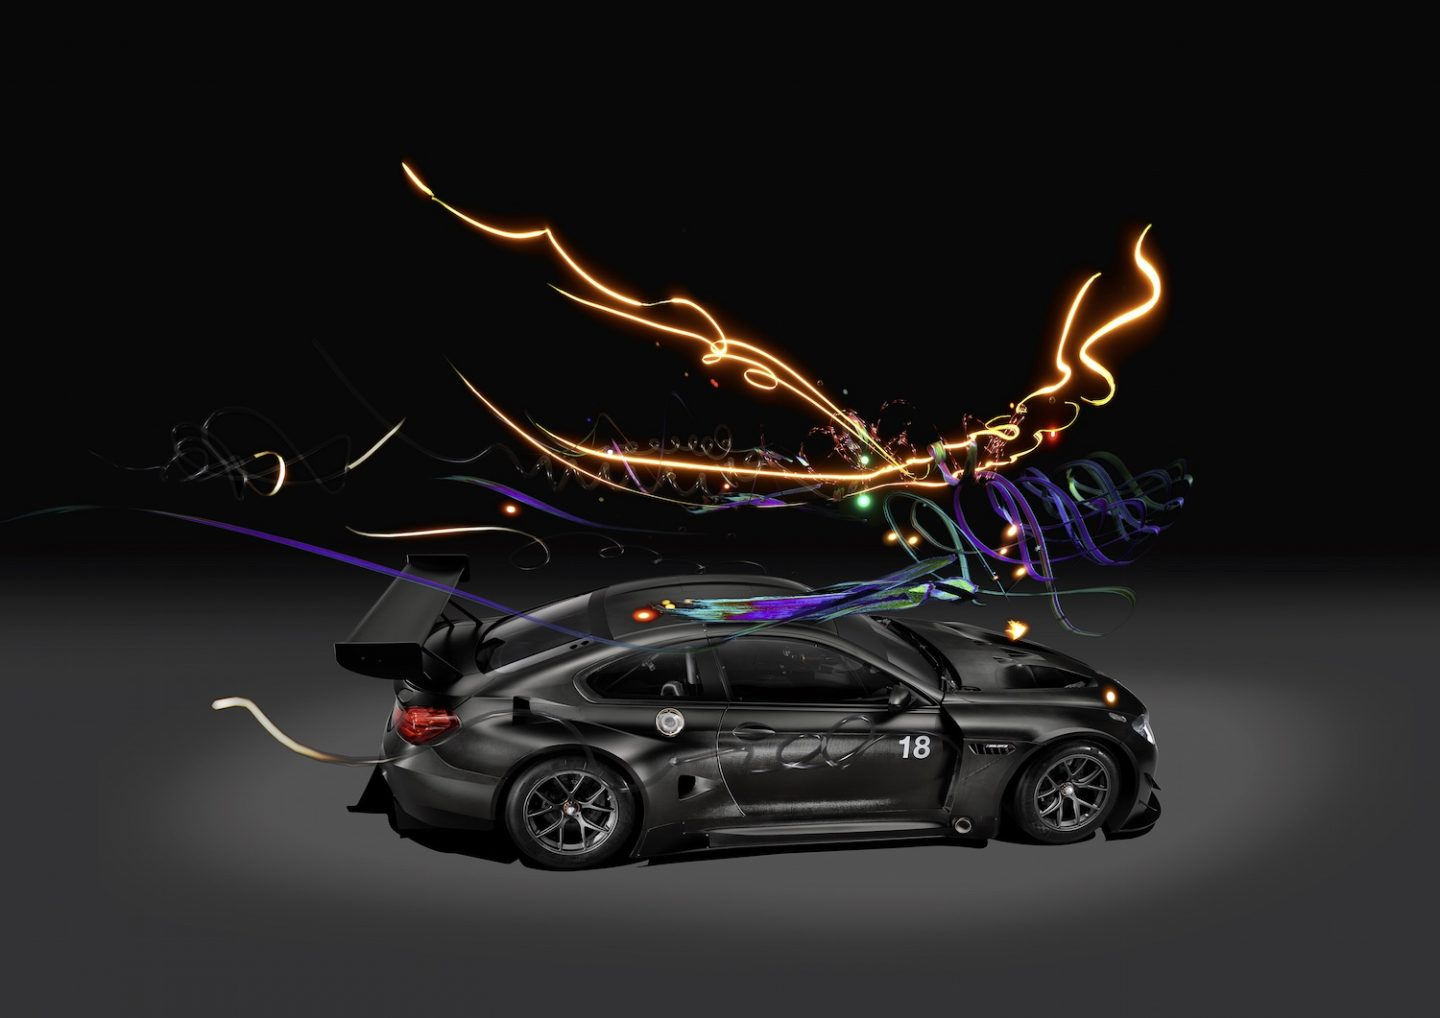 Cao Fei_BMW Art Car 18_2017_P5_30x21cm